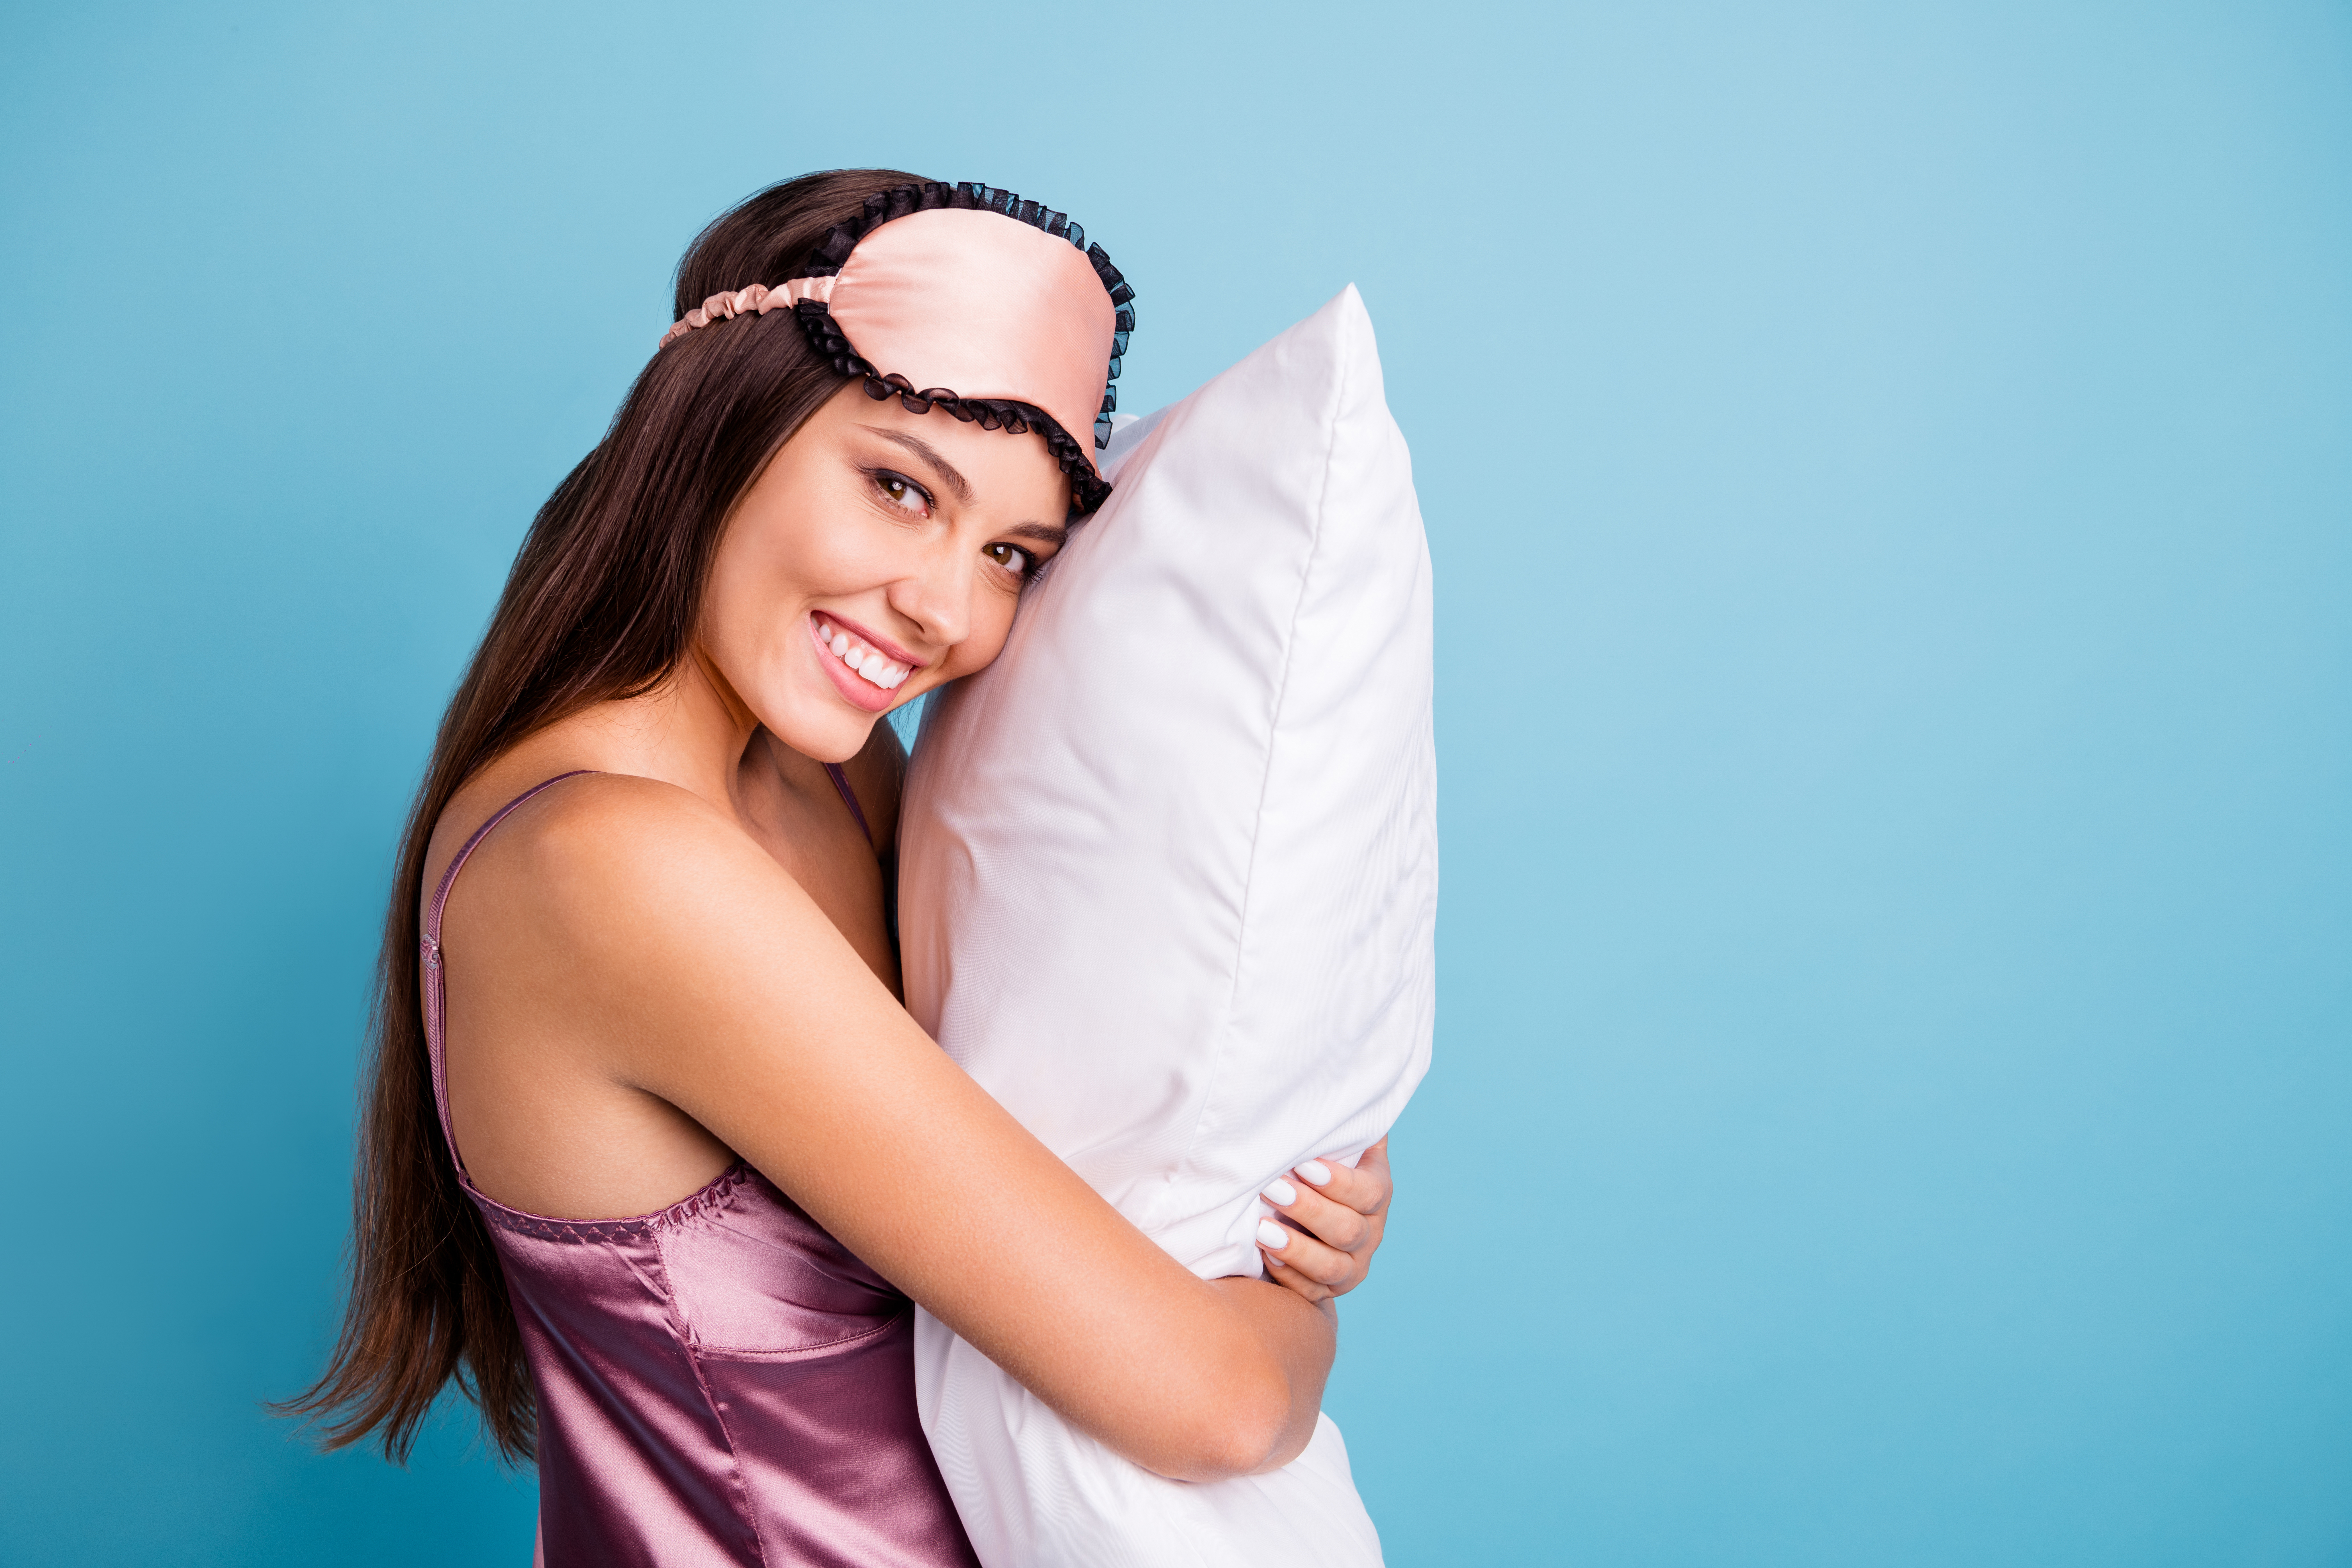 Profile side view portrait of her she nice-looking attractive lovely pretty feminine cheerful cheery girl embracing pillow late time isolated on bright vivid shine teal blue green turquoise background